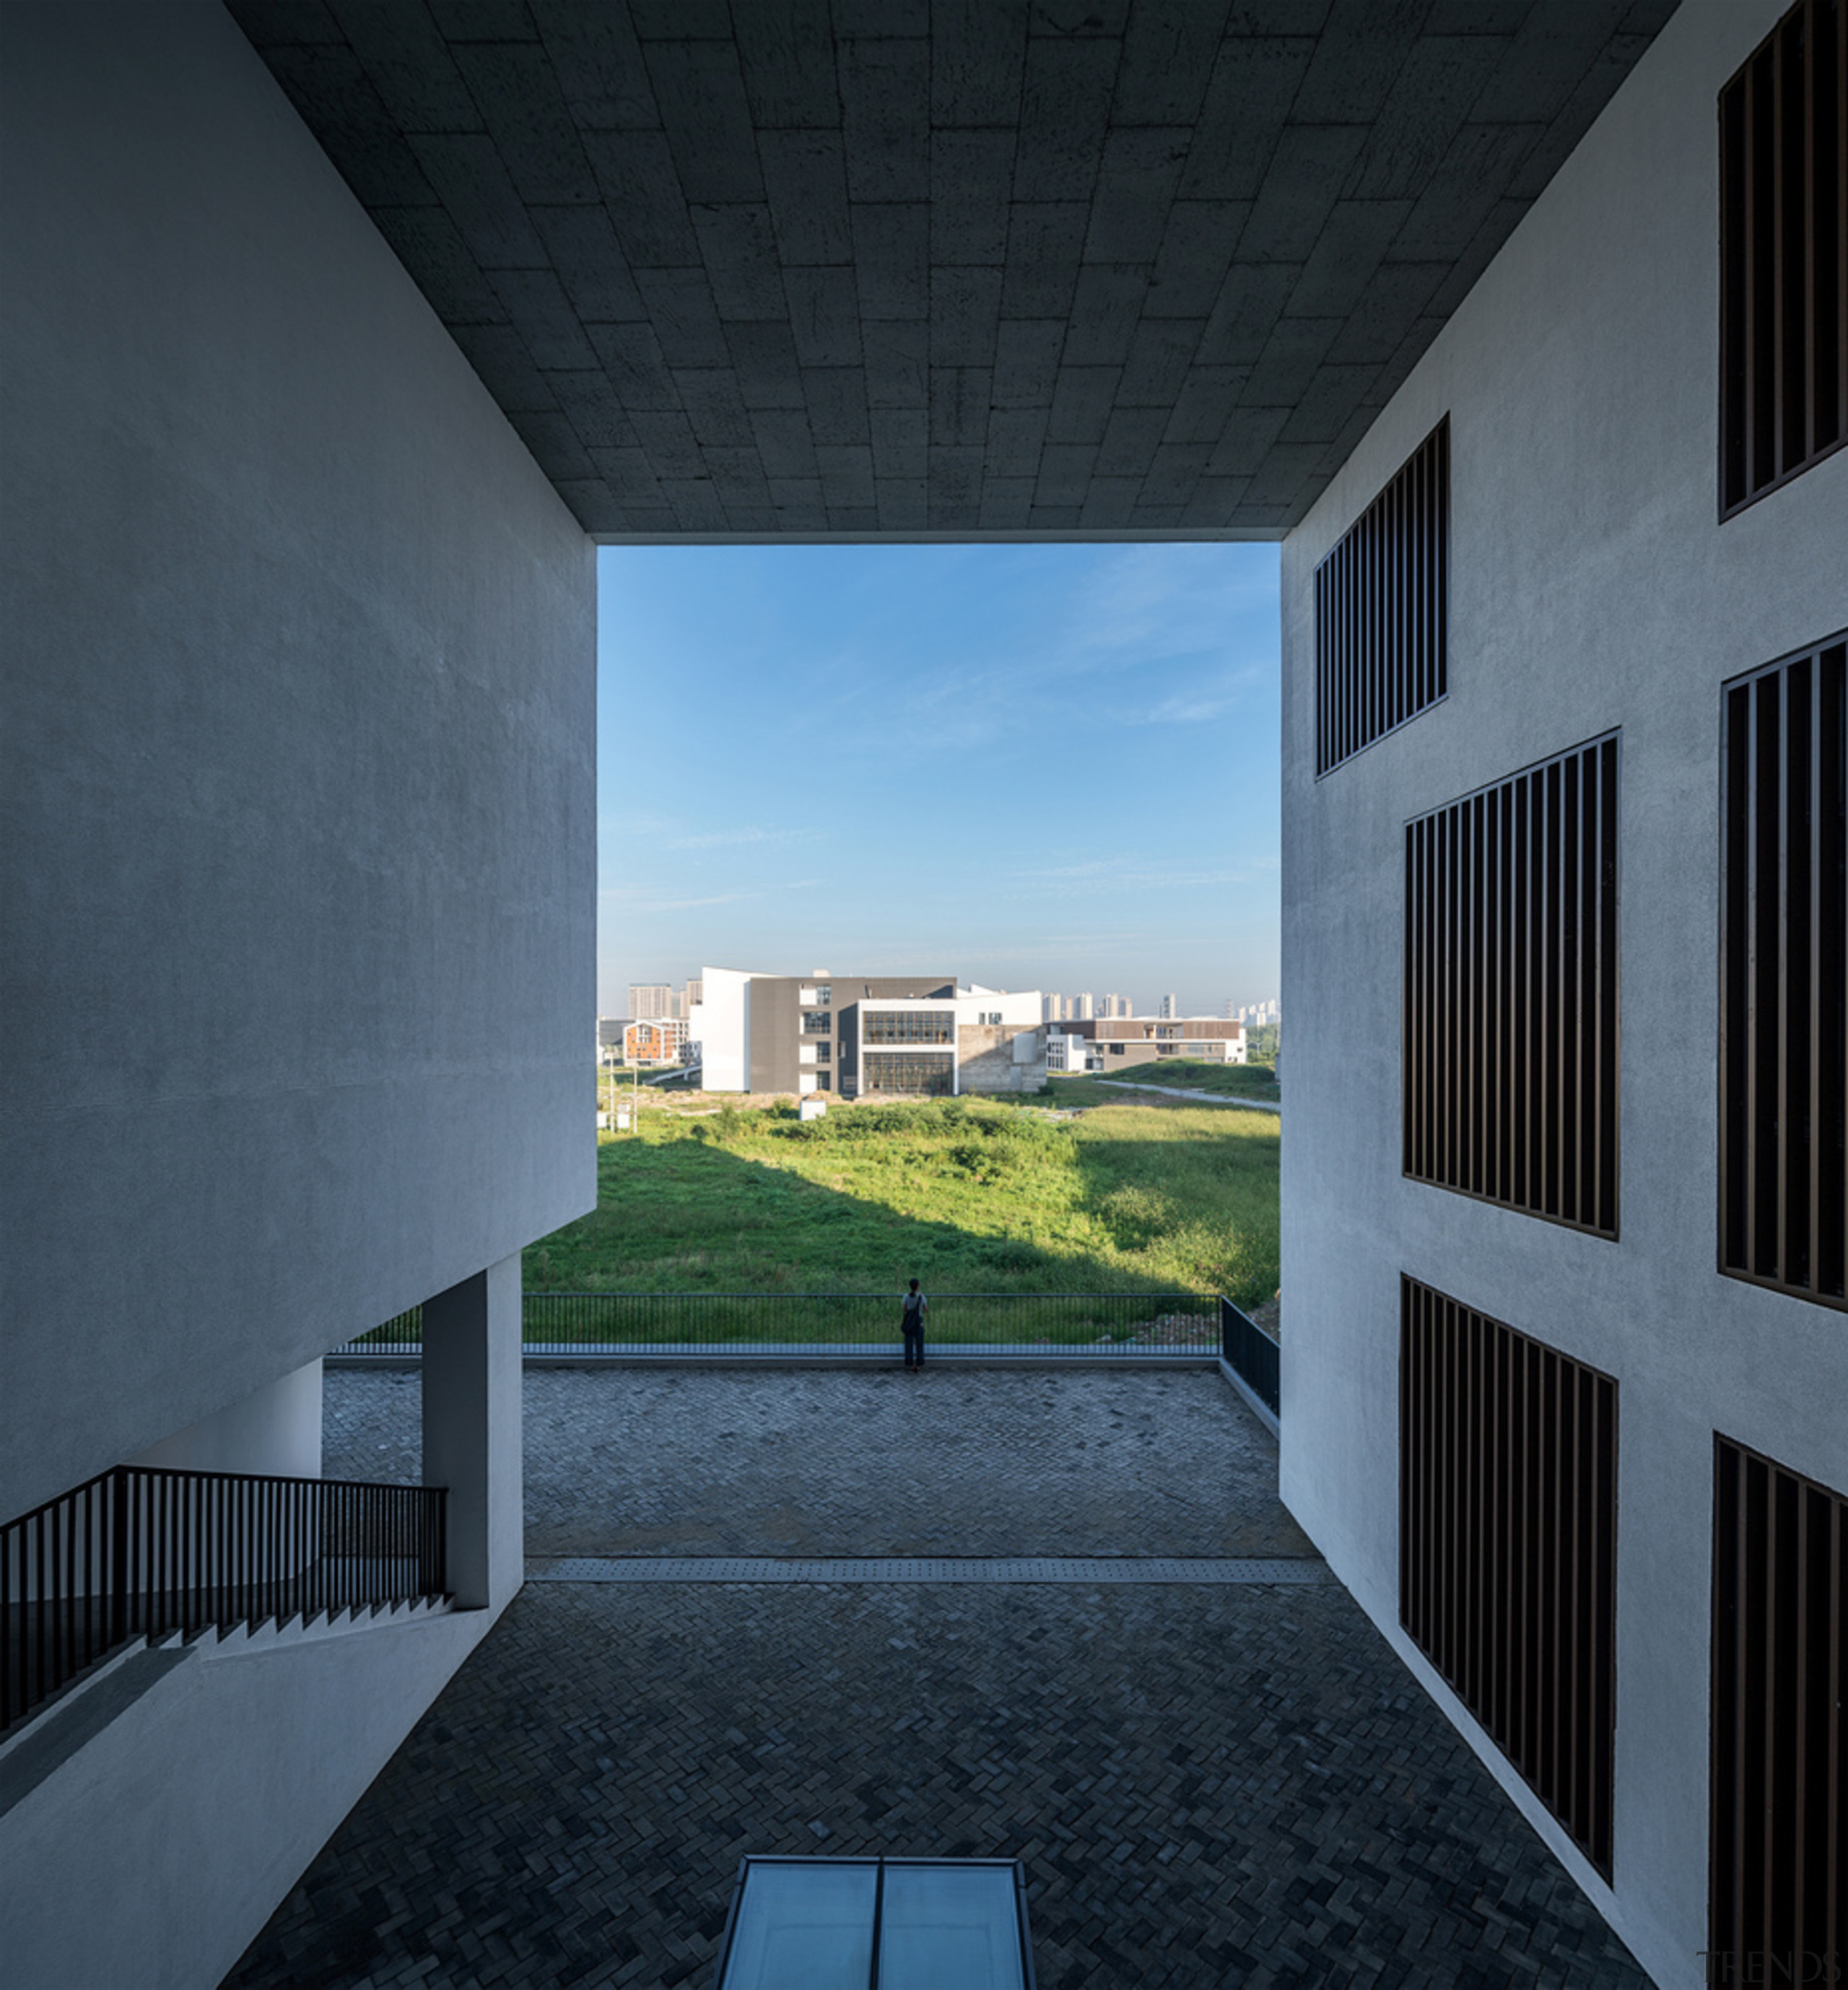 Gallery 4 - apartment | architecture | building apartment, architecture, building, cloud, daylighting, daytime, facade, home, house, sky, structure, sunlight, window, black